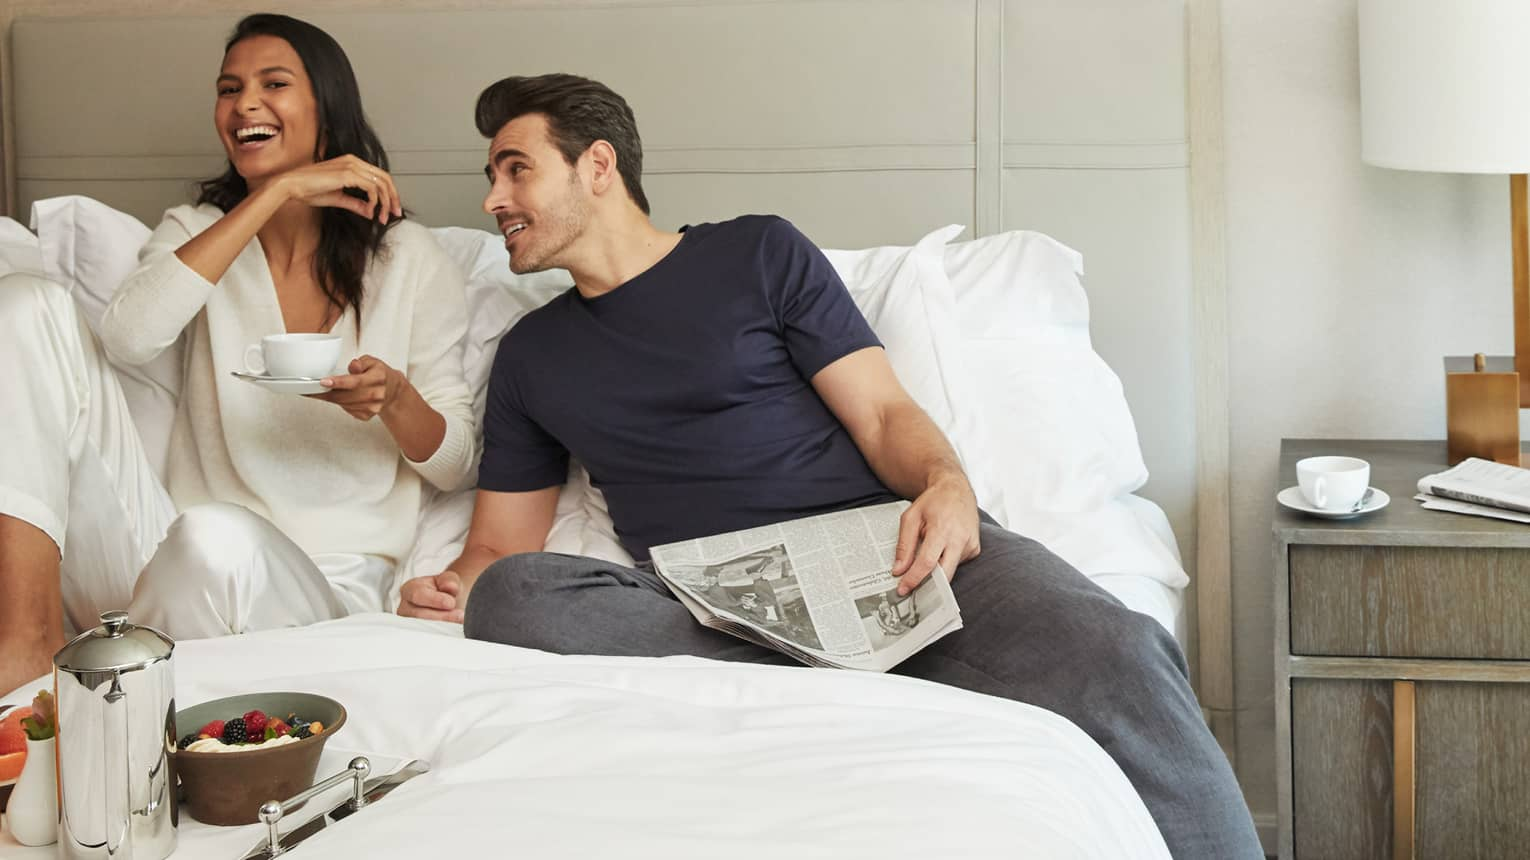 Man with newspaper and woman holding coffee cup lounge in hotel bed with in room breakfast dining tray